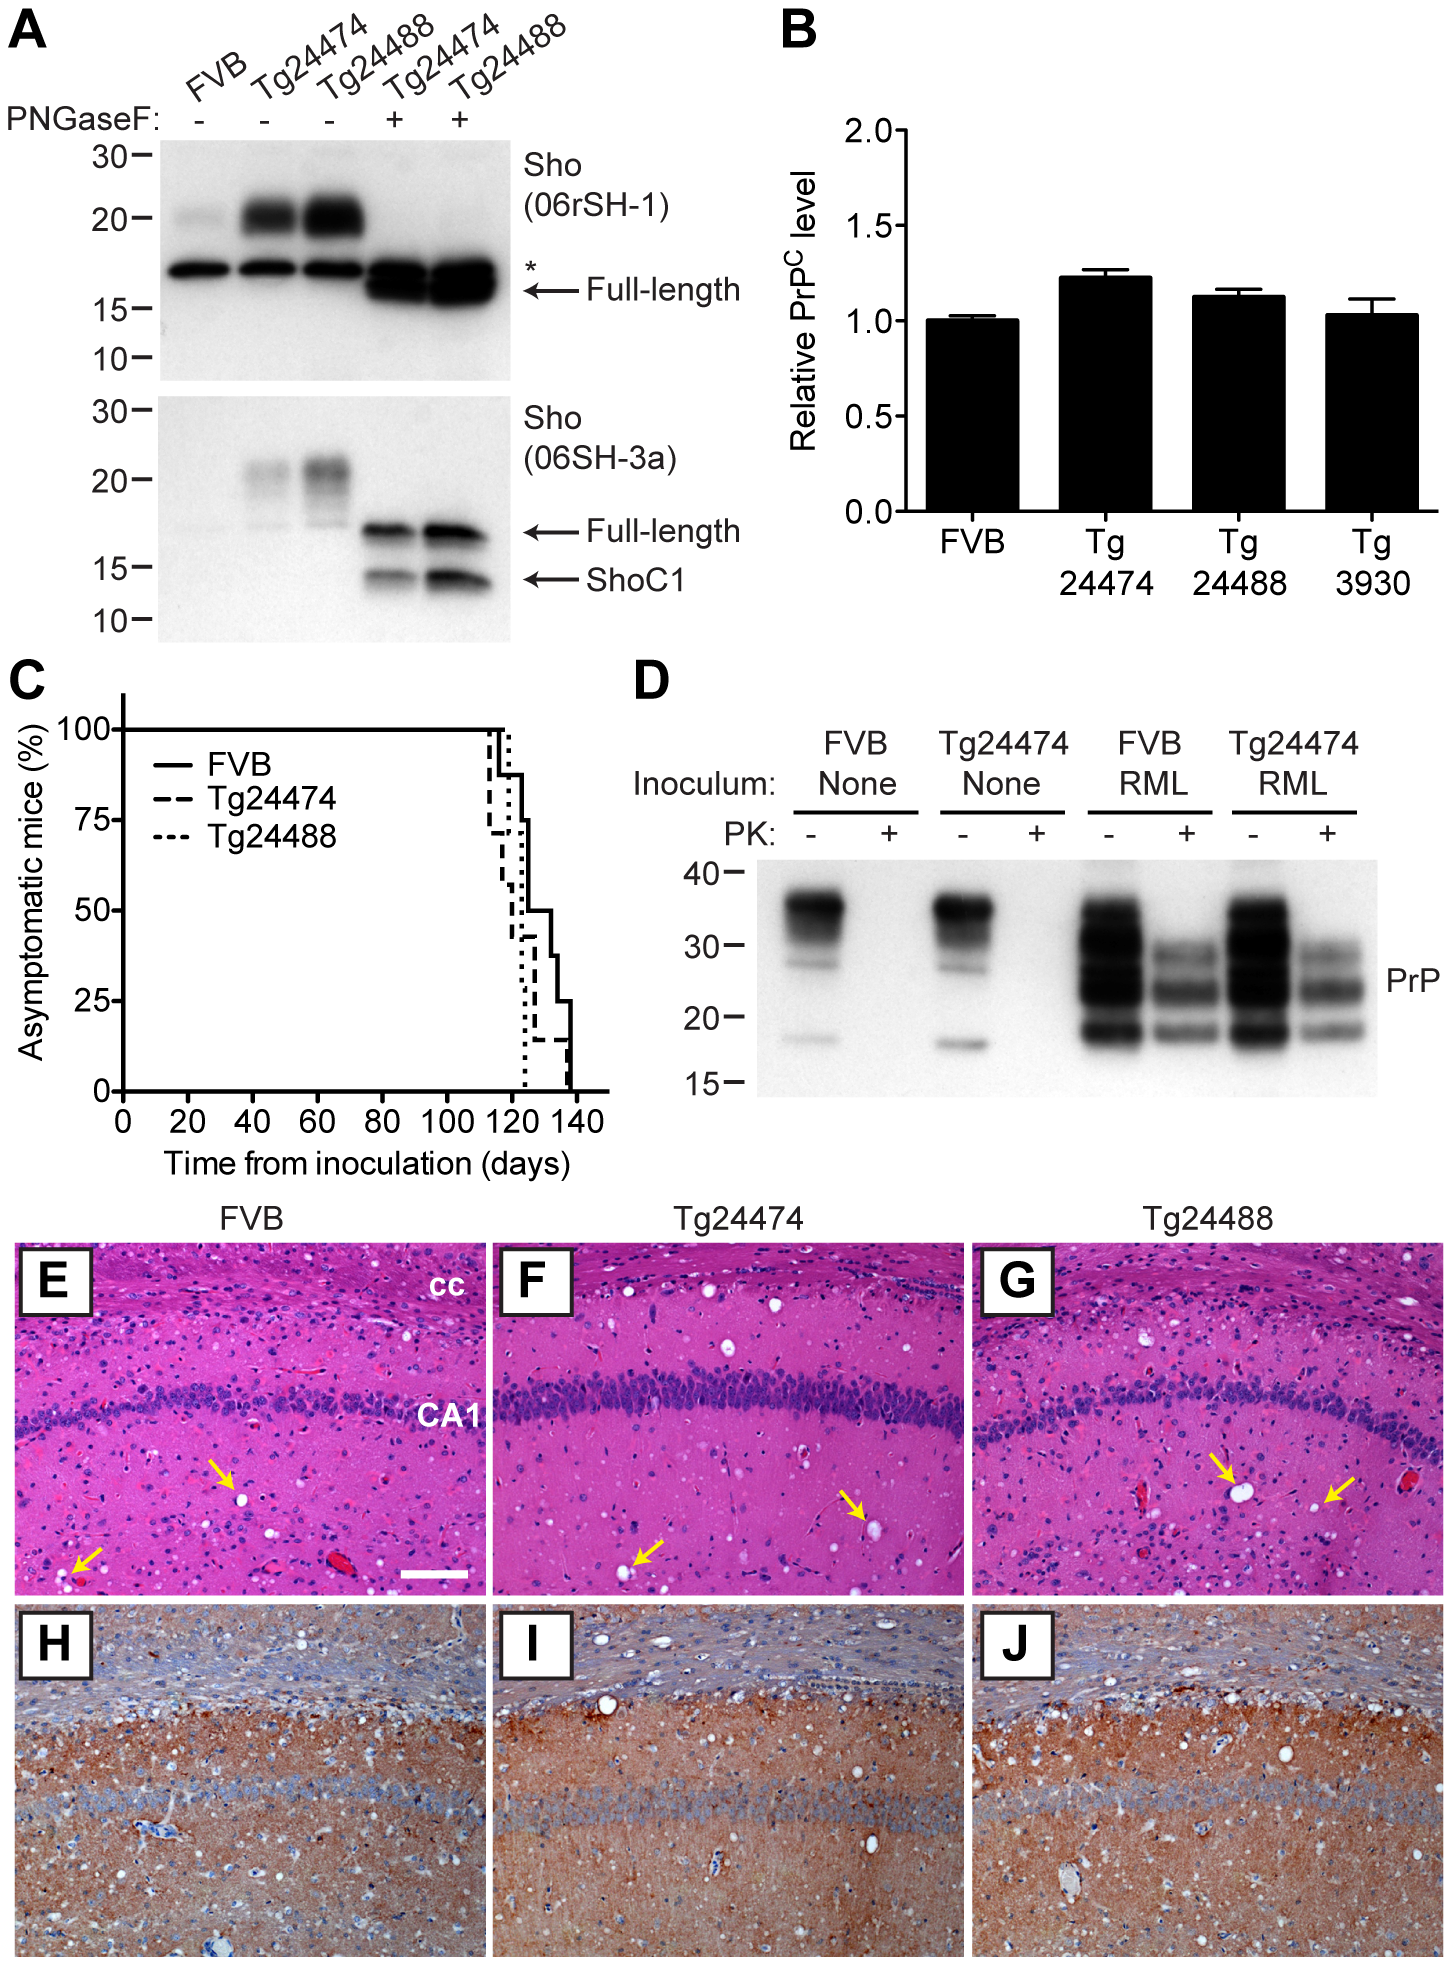 Prion infection of transgenic mice overexpressing Sho.